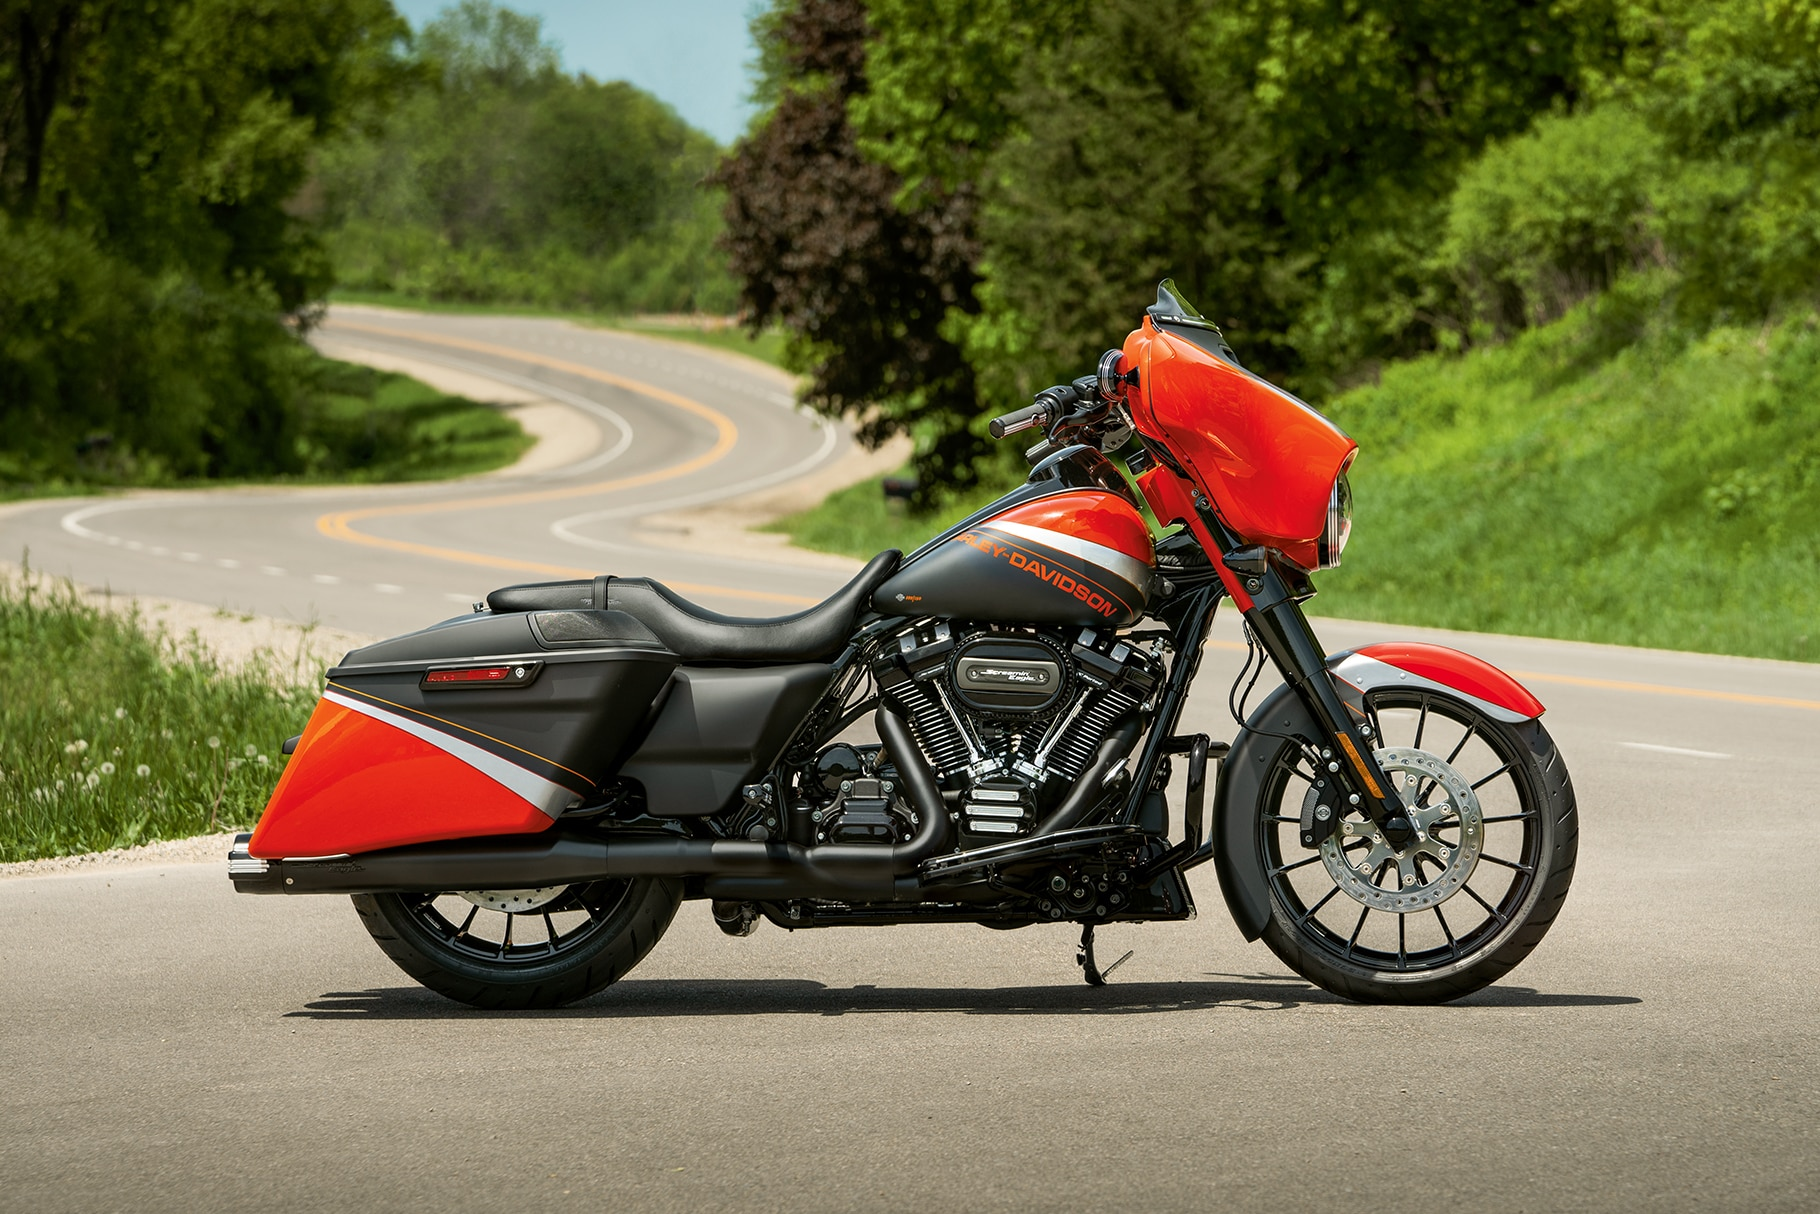 2019 Street Glide Special Motorcycle